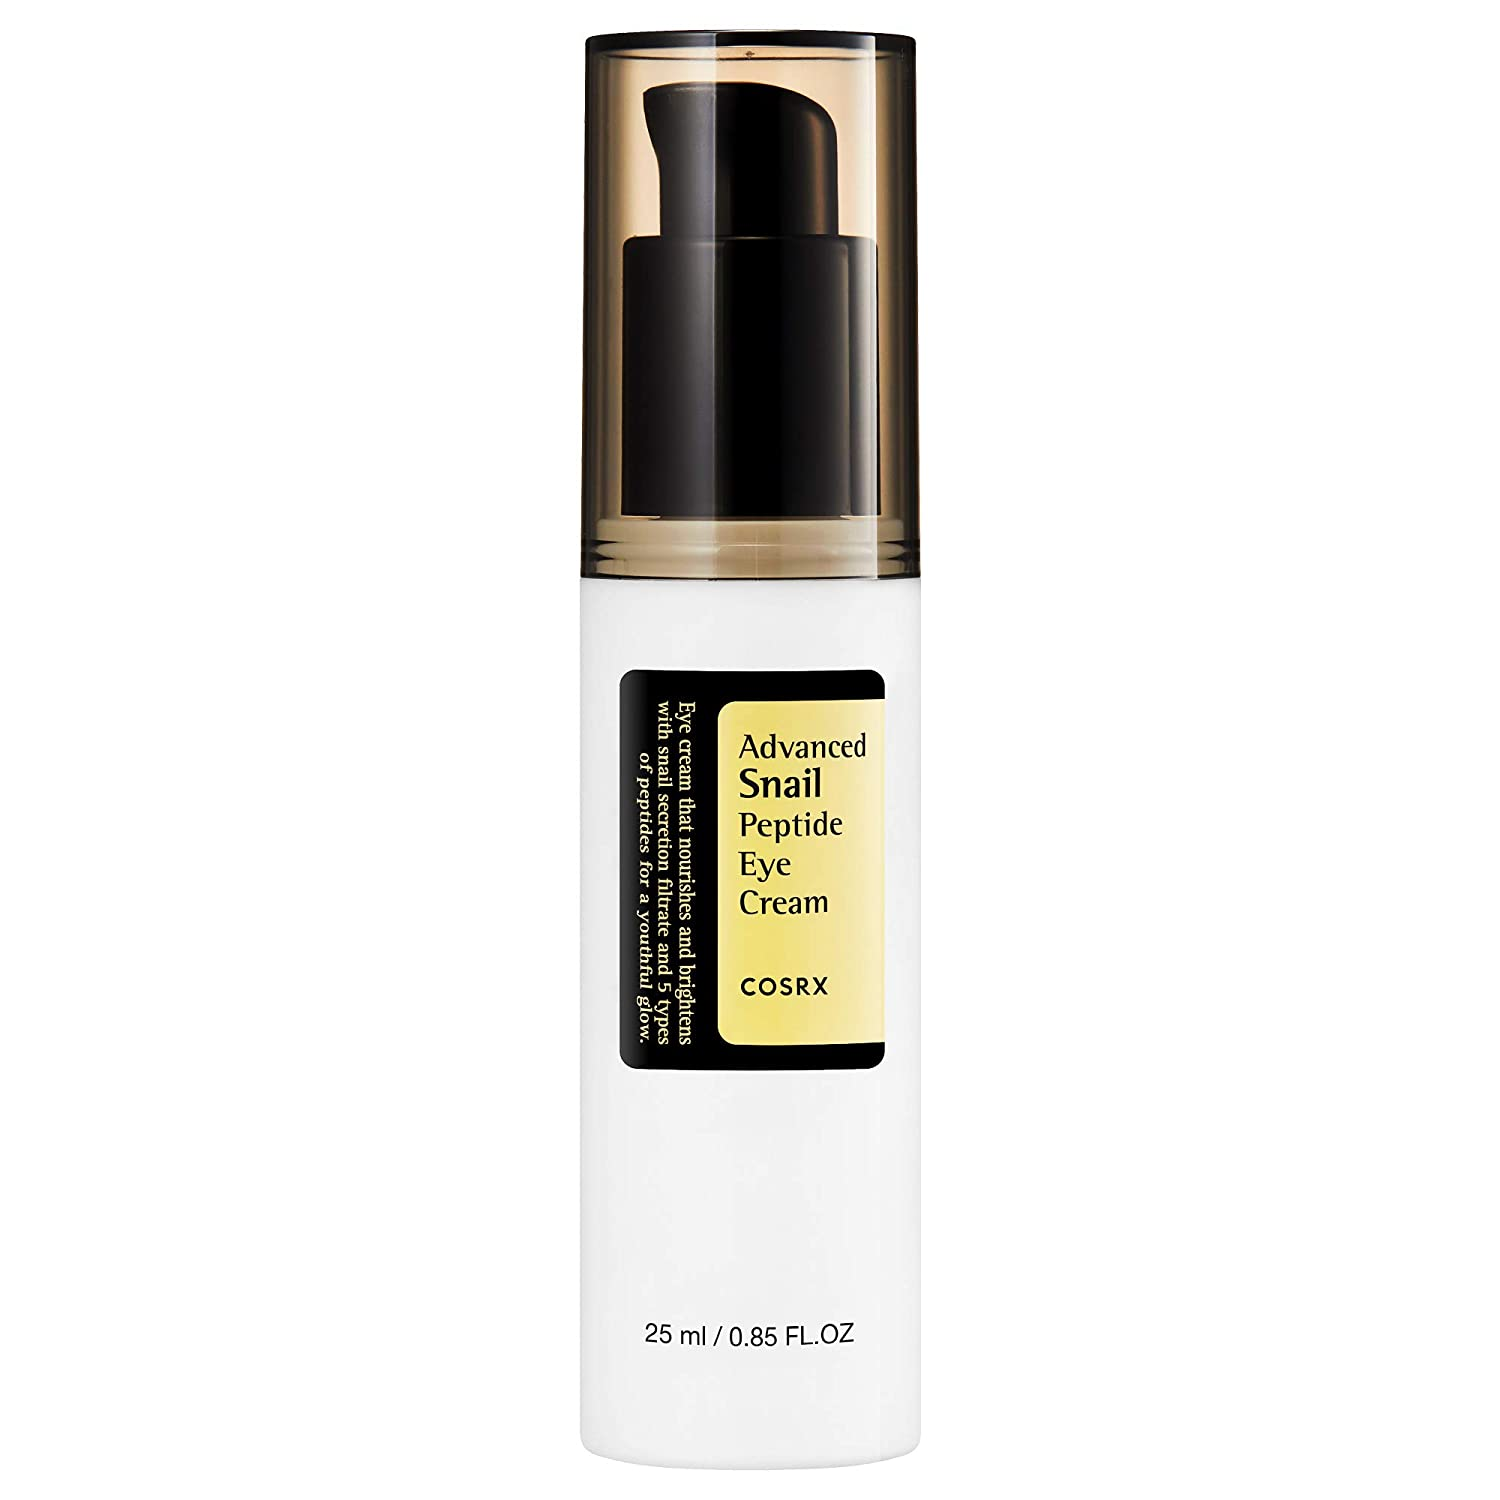 Advanced Snail Peptide Eye Cream by CosRX